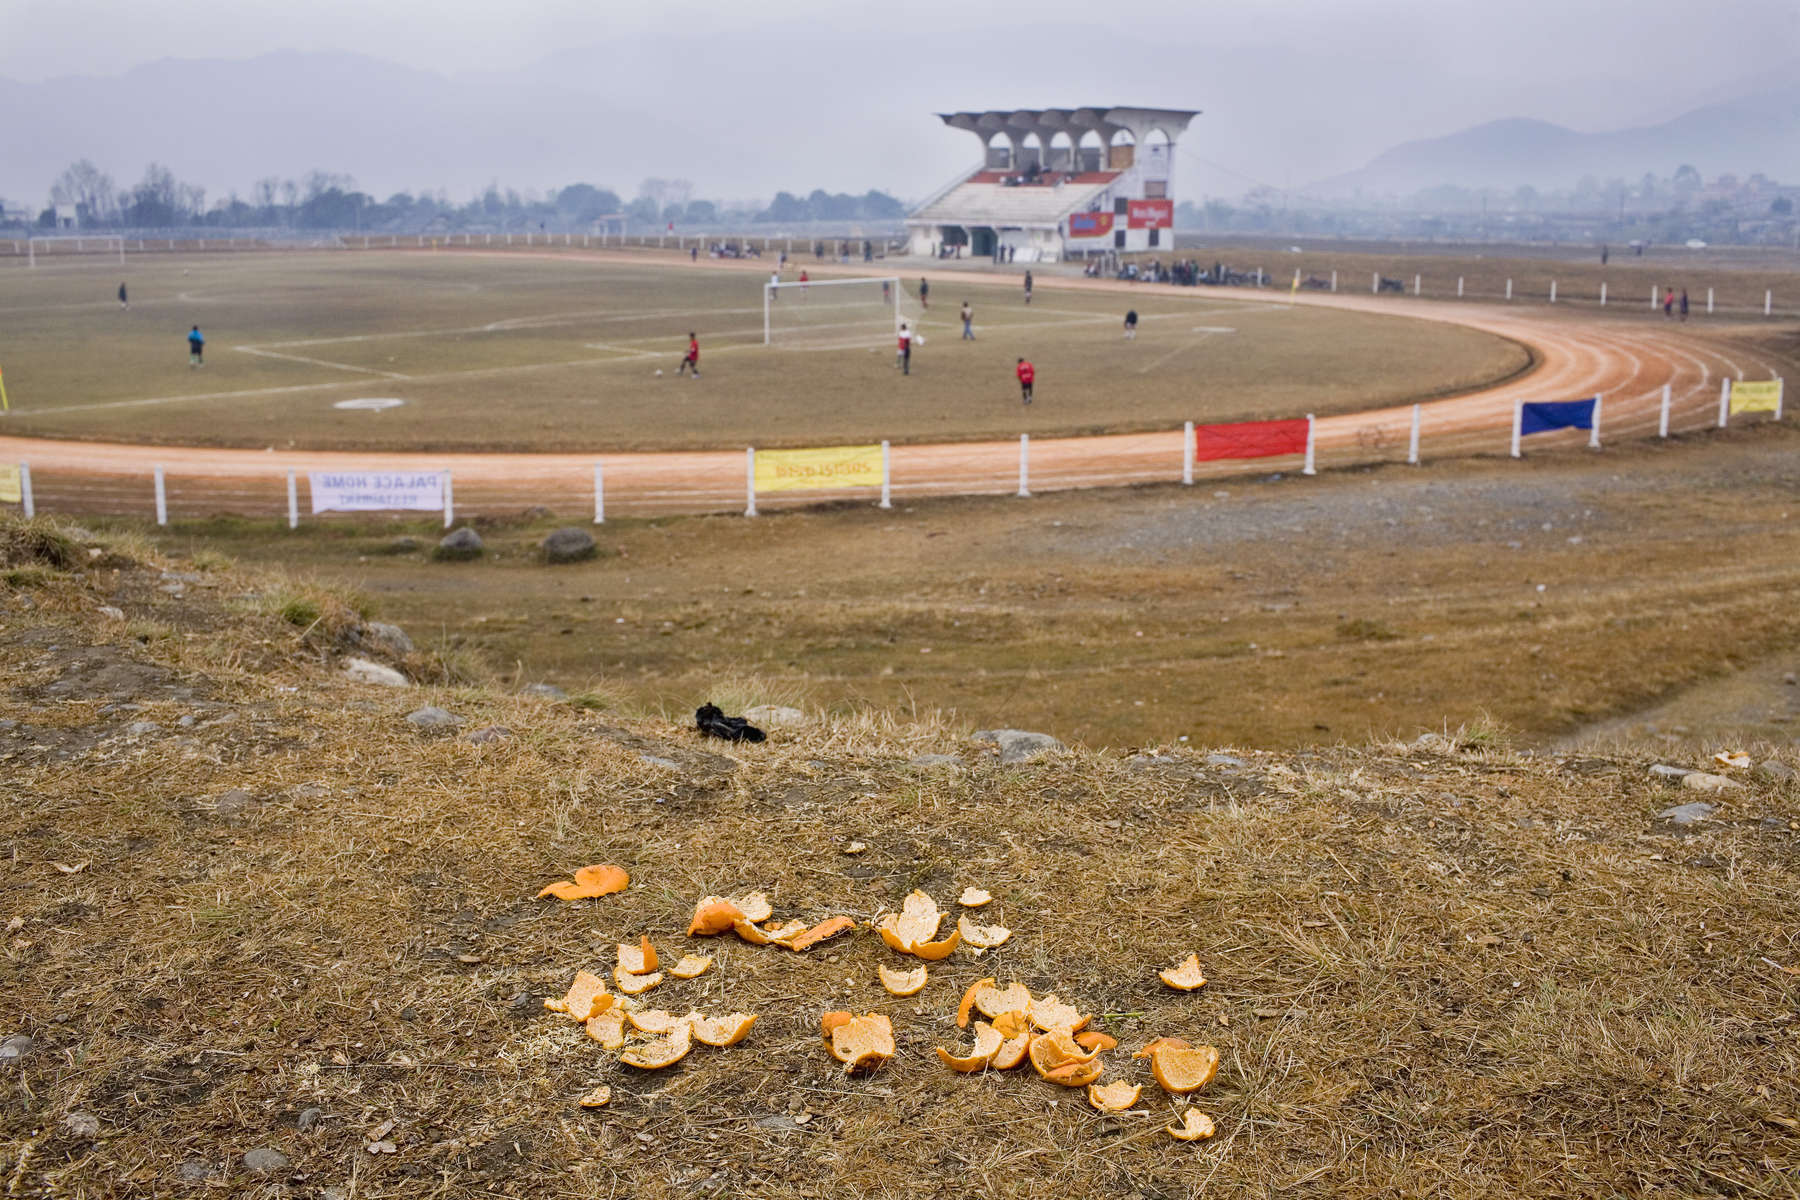 Orange peel scattered on the hill overlooking a football stadium in Pokhara, Nepal.In disaster areas, war zones and urban wastelands, football keeps humanity alive. It brings nations together and promotes unity. It encourages equality and generates pride and self-belief. It has the power to heal and to help, to motivate, to give freedom to dreams and empower a generation. There are millions of people playing the game or helping it to flourish who find that football brings a positive dimension to their lives.Away from the billionaire owned clubs with it's multi-million dollar players, Football's Hidden Story is a series of emotive human interest photographs showing the positive impact football has had at grassroot level on individuals and communities all around the world.